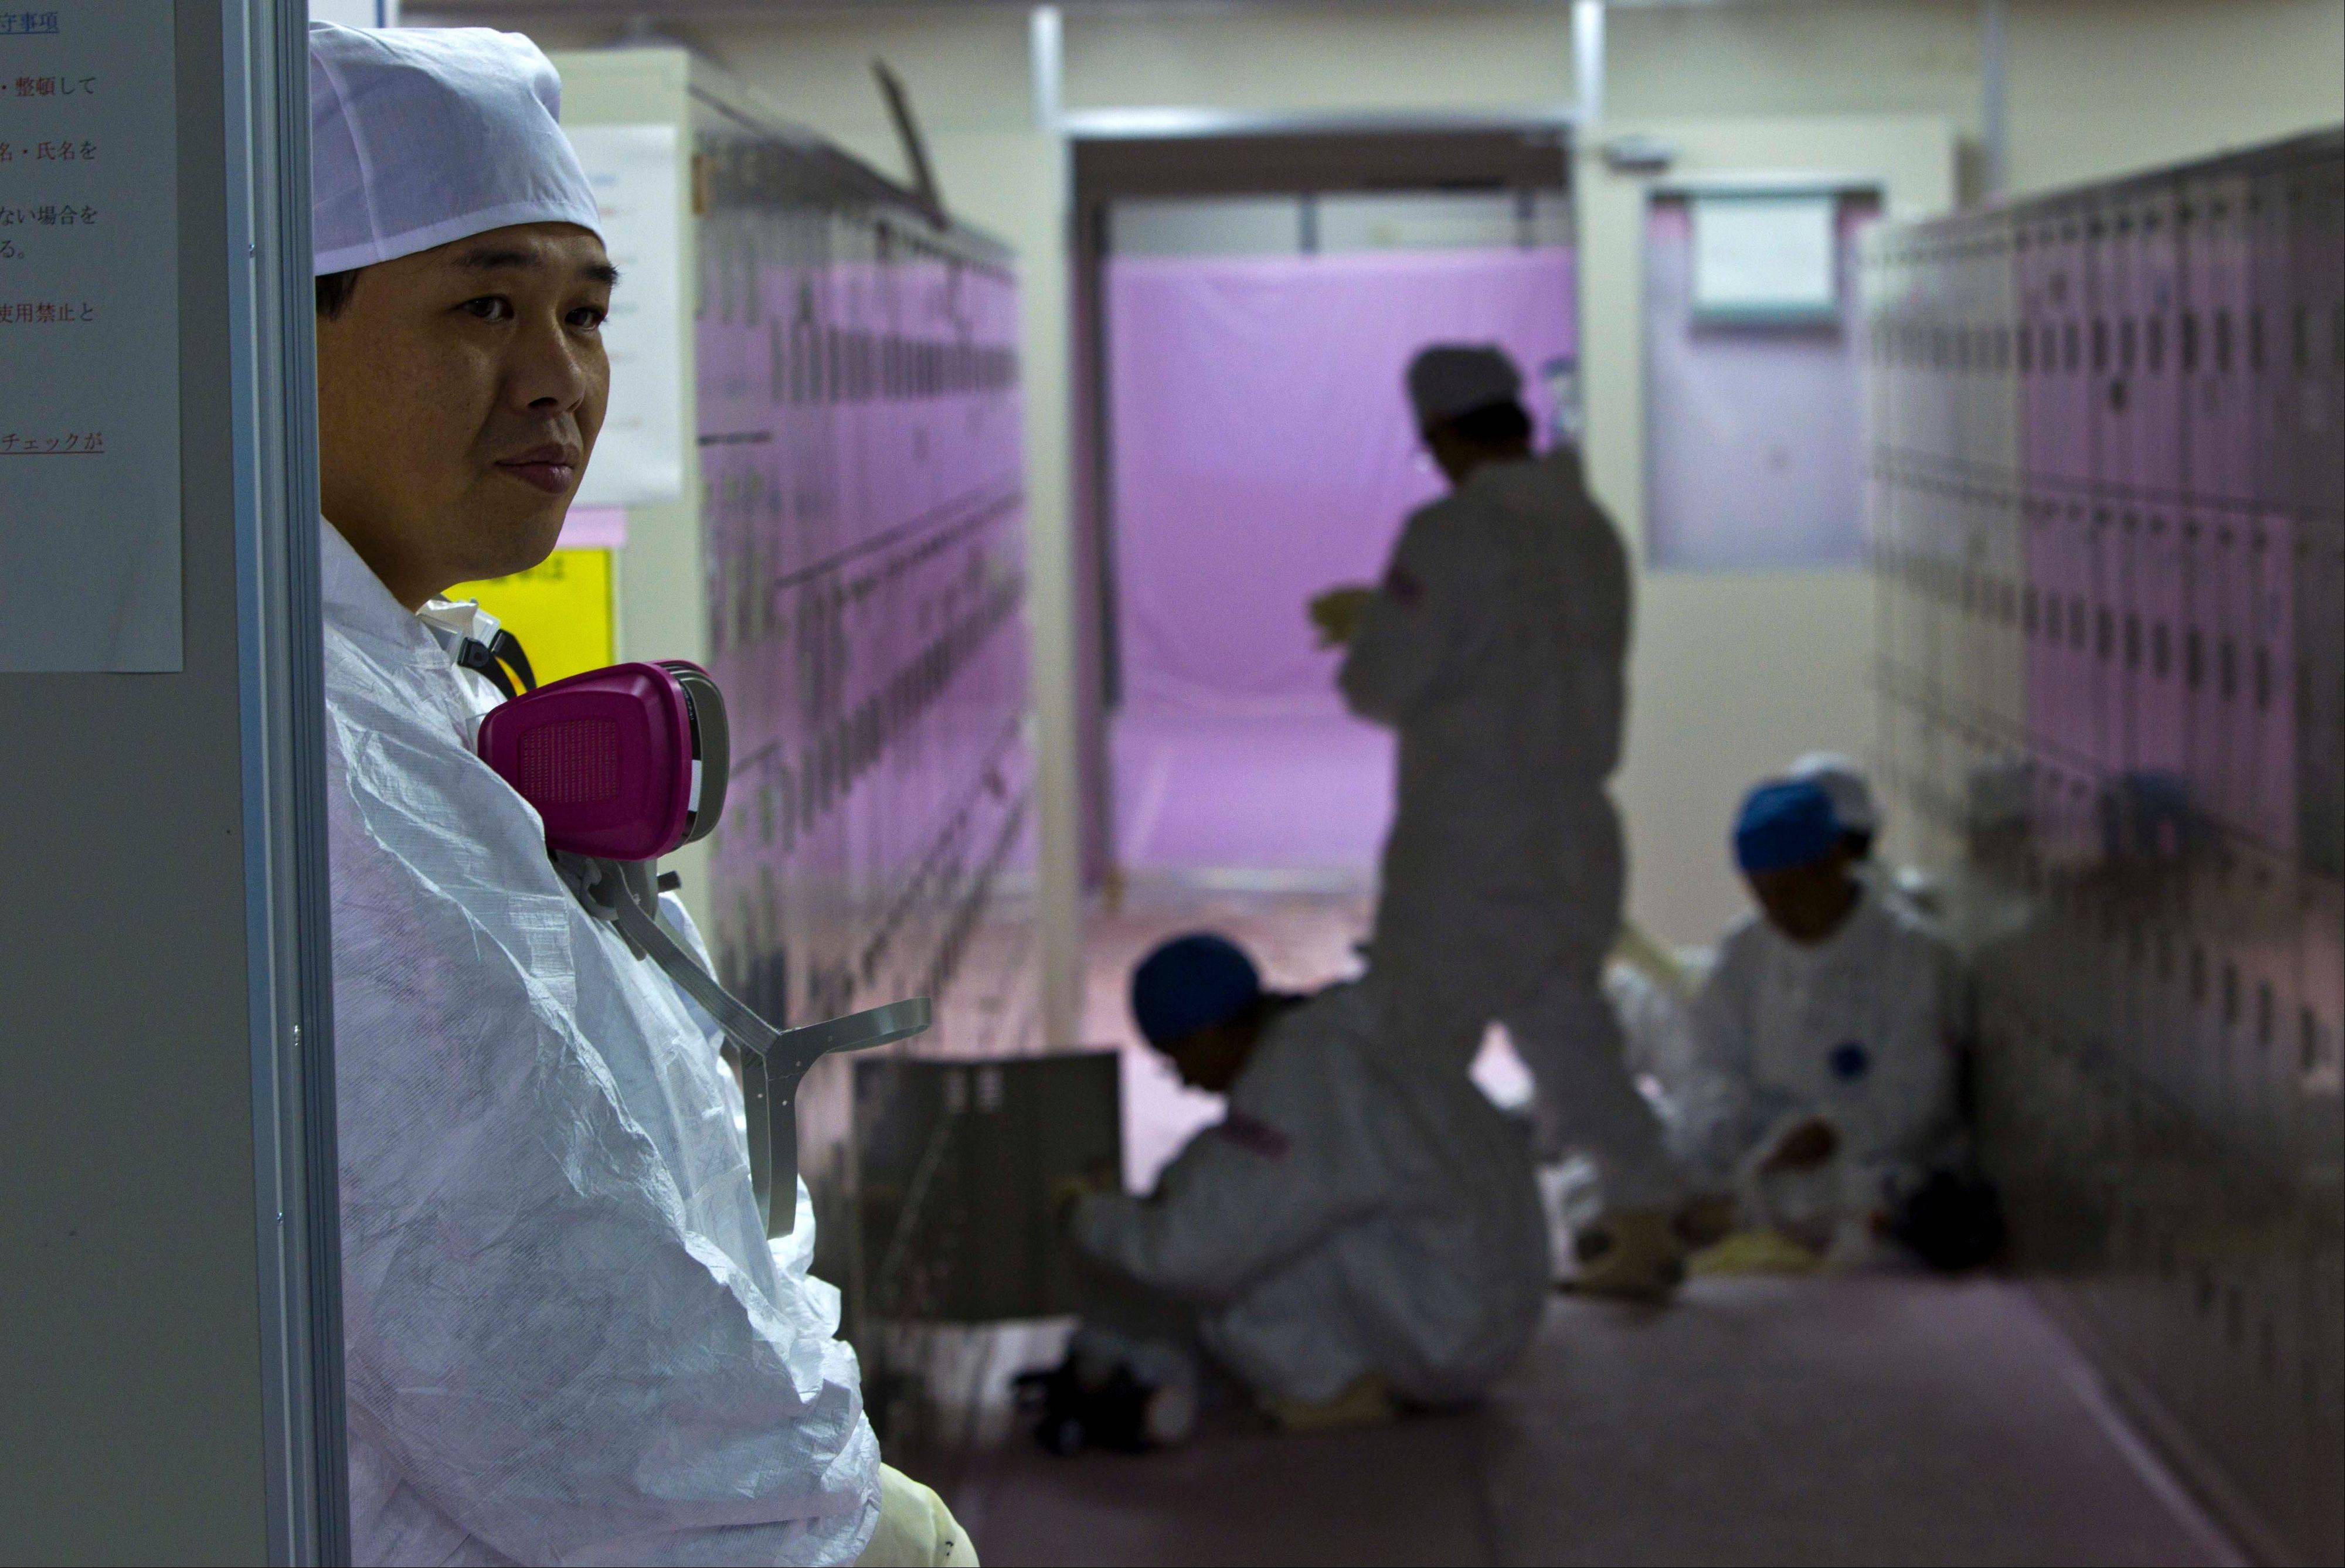 In this Nov. 12, 2011, file photo, workers in protective suits gather near their lockers inside the emergency operation center at the crippled Fukushima Dai-ichi nuclear power station in Okuma, Japan. Japanese labor officials said Sunday they are investigating subcontractors on suspicion they forced workers at the tsunami-hit nuclear plant to underreport their dosimeter readings so they could stay on the job longer.